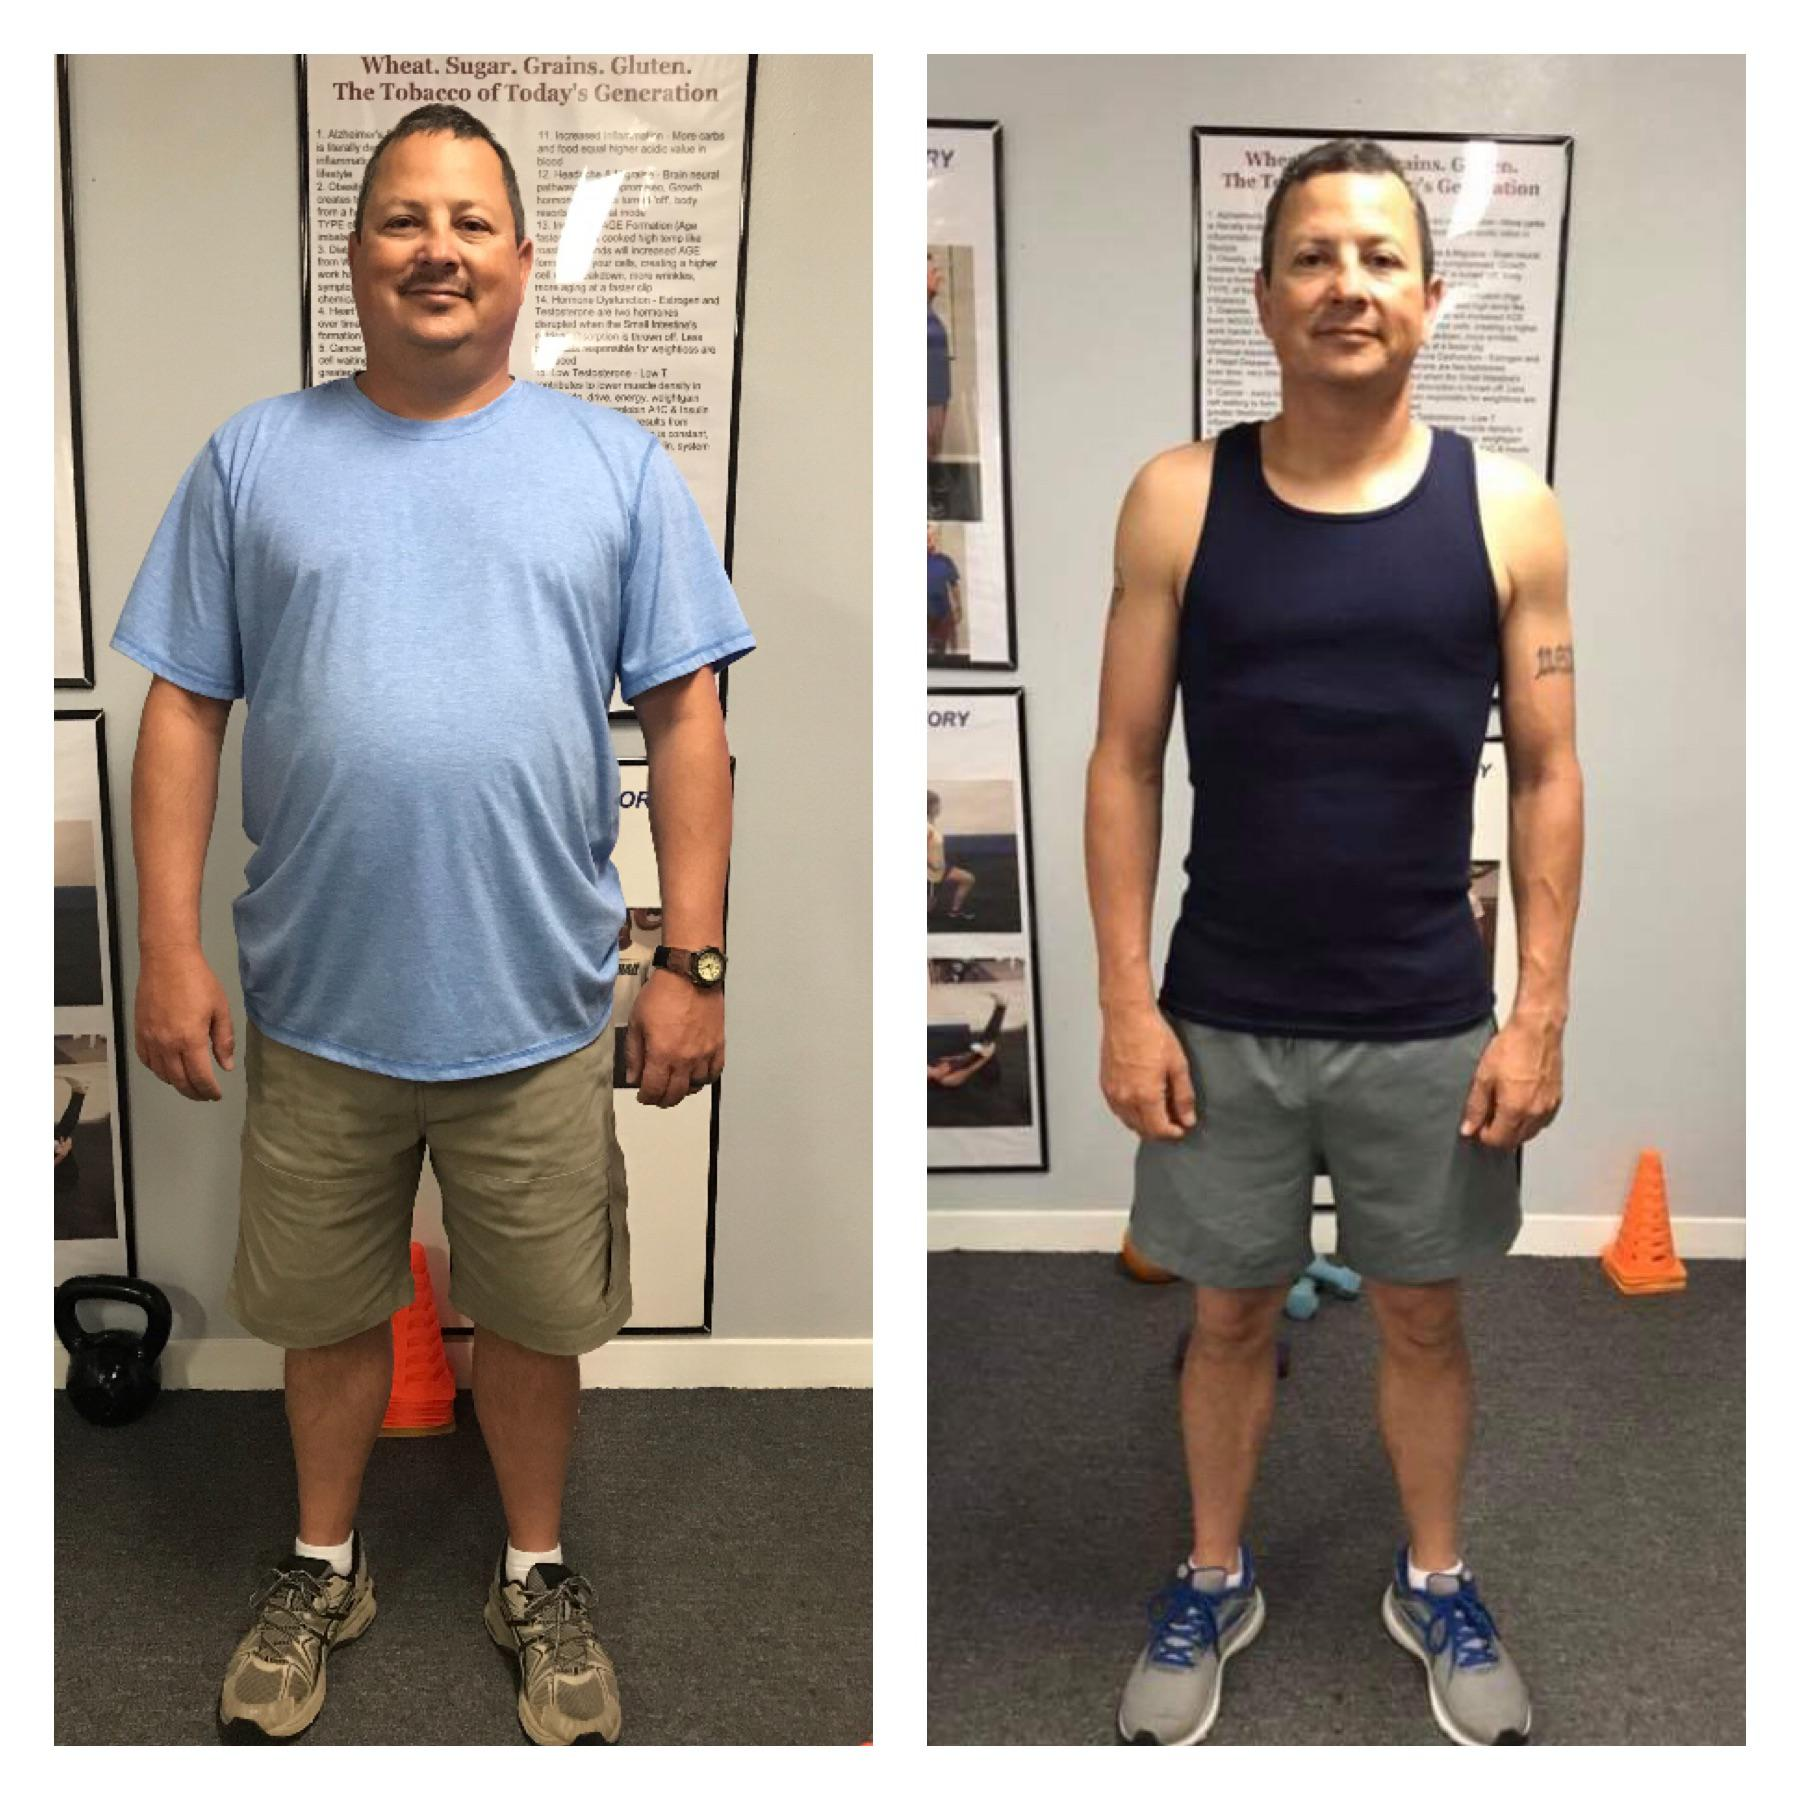 5 foot 7 Male Before and After 59 lbs Weight Loss 207 lbs to 148 lbs